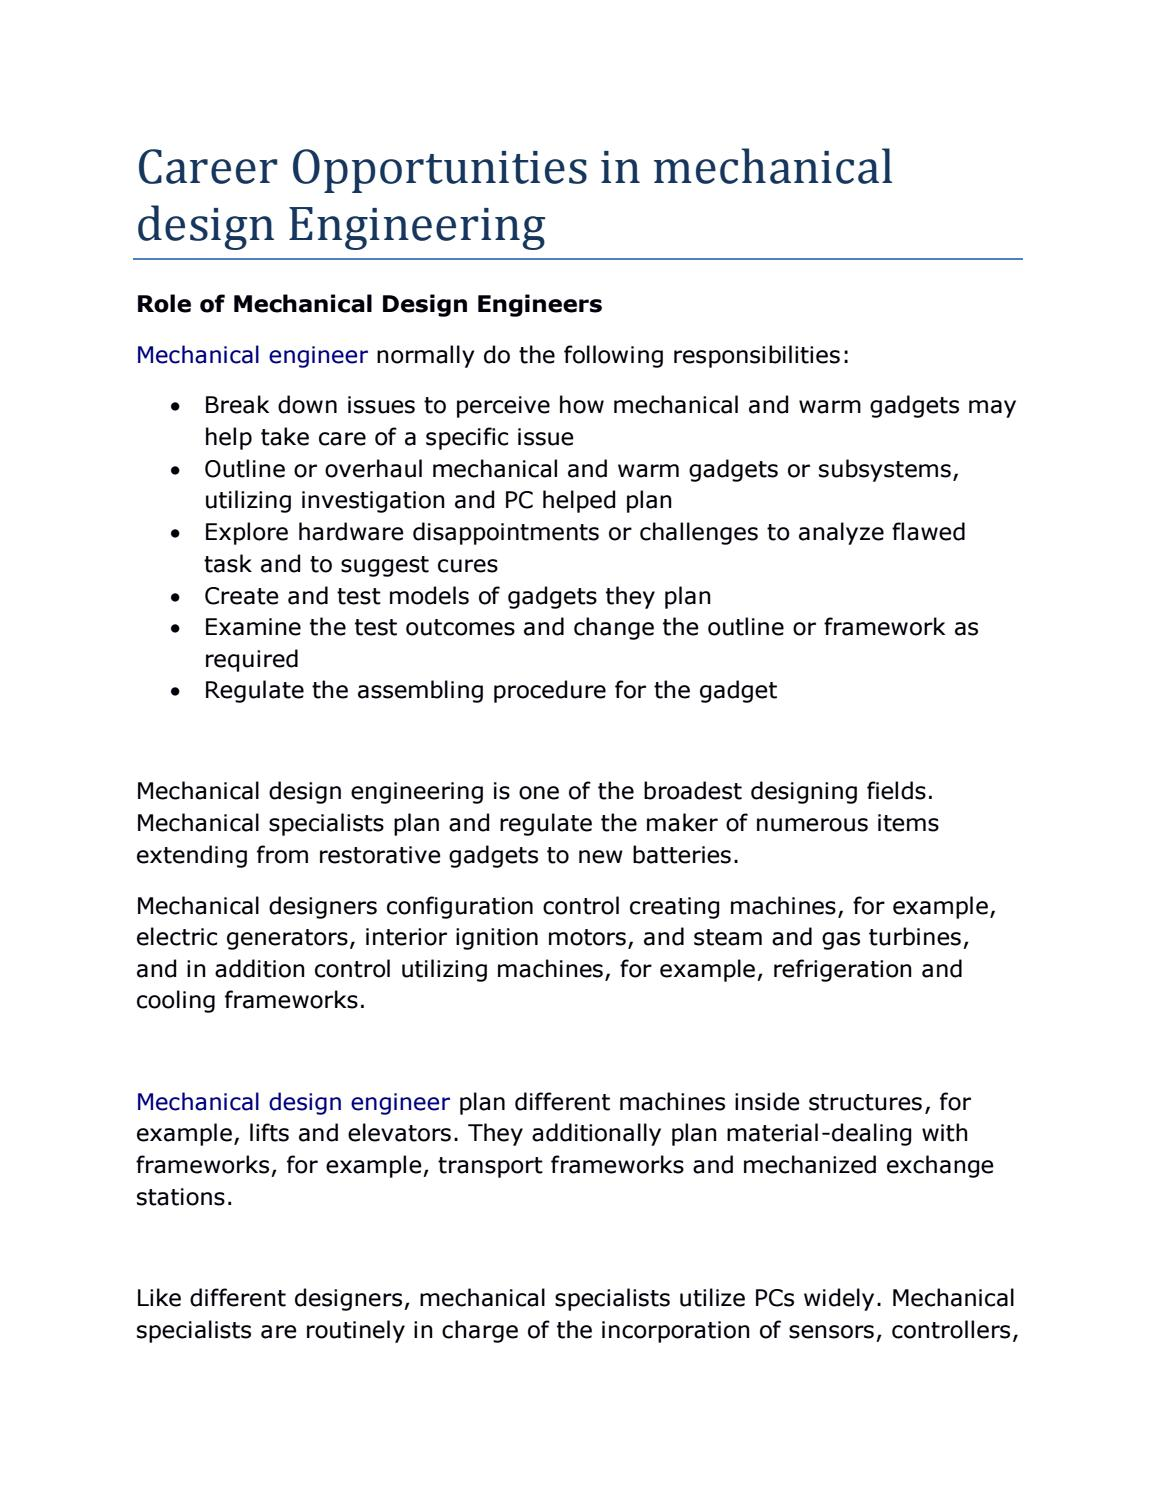 Career Opportunities In Mechanical Design Engineering By Adityakurapati14 Issuu